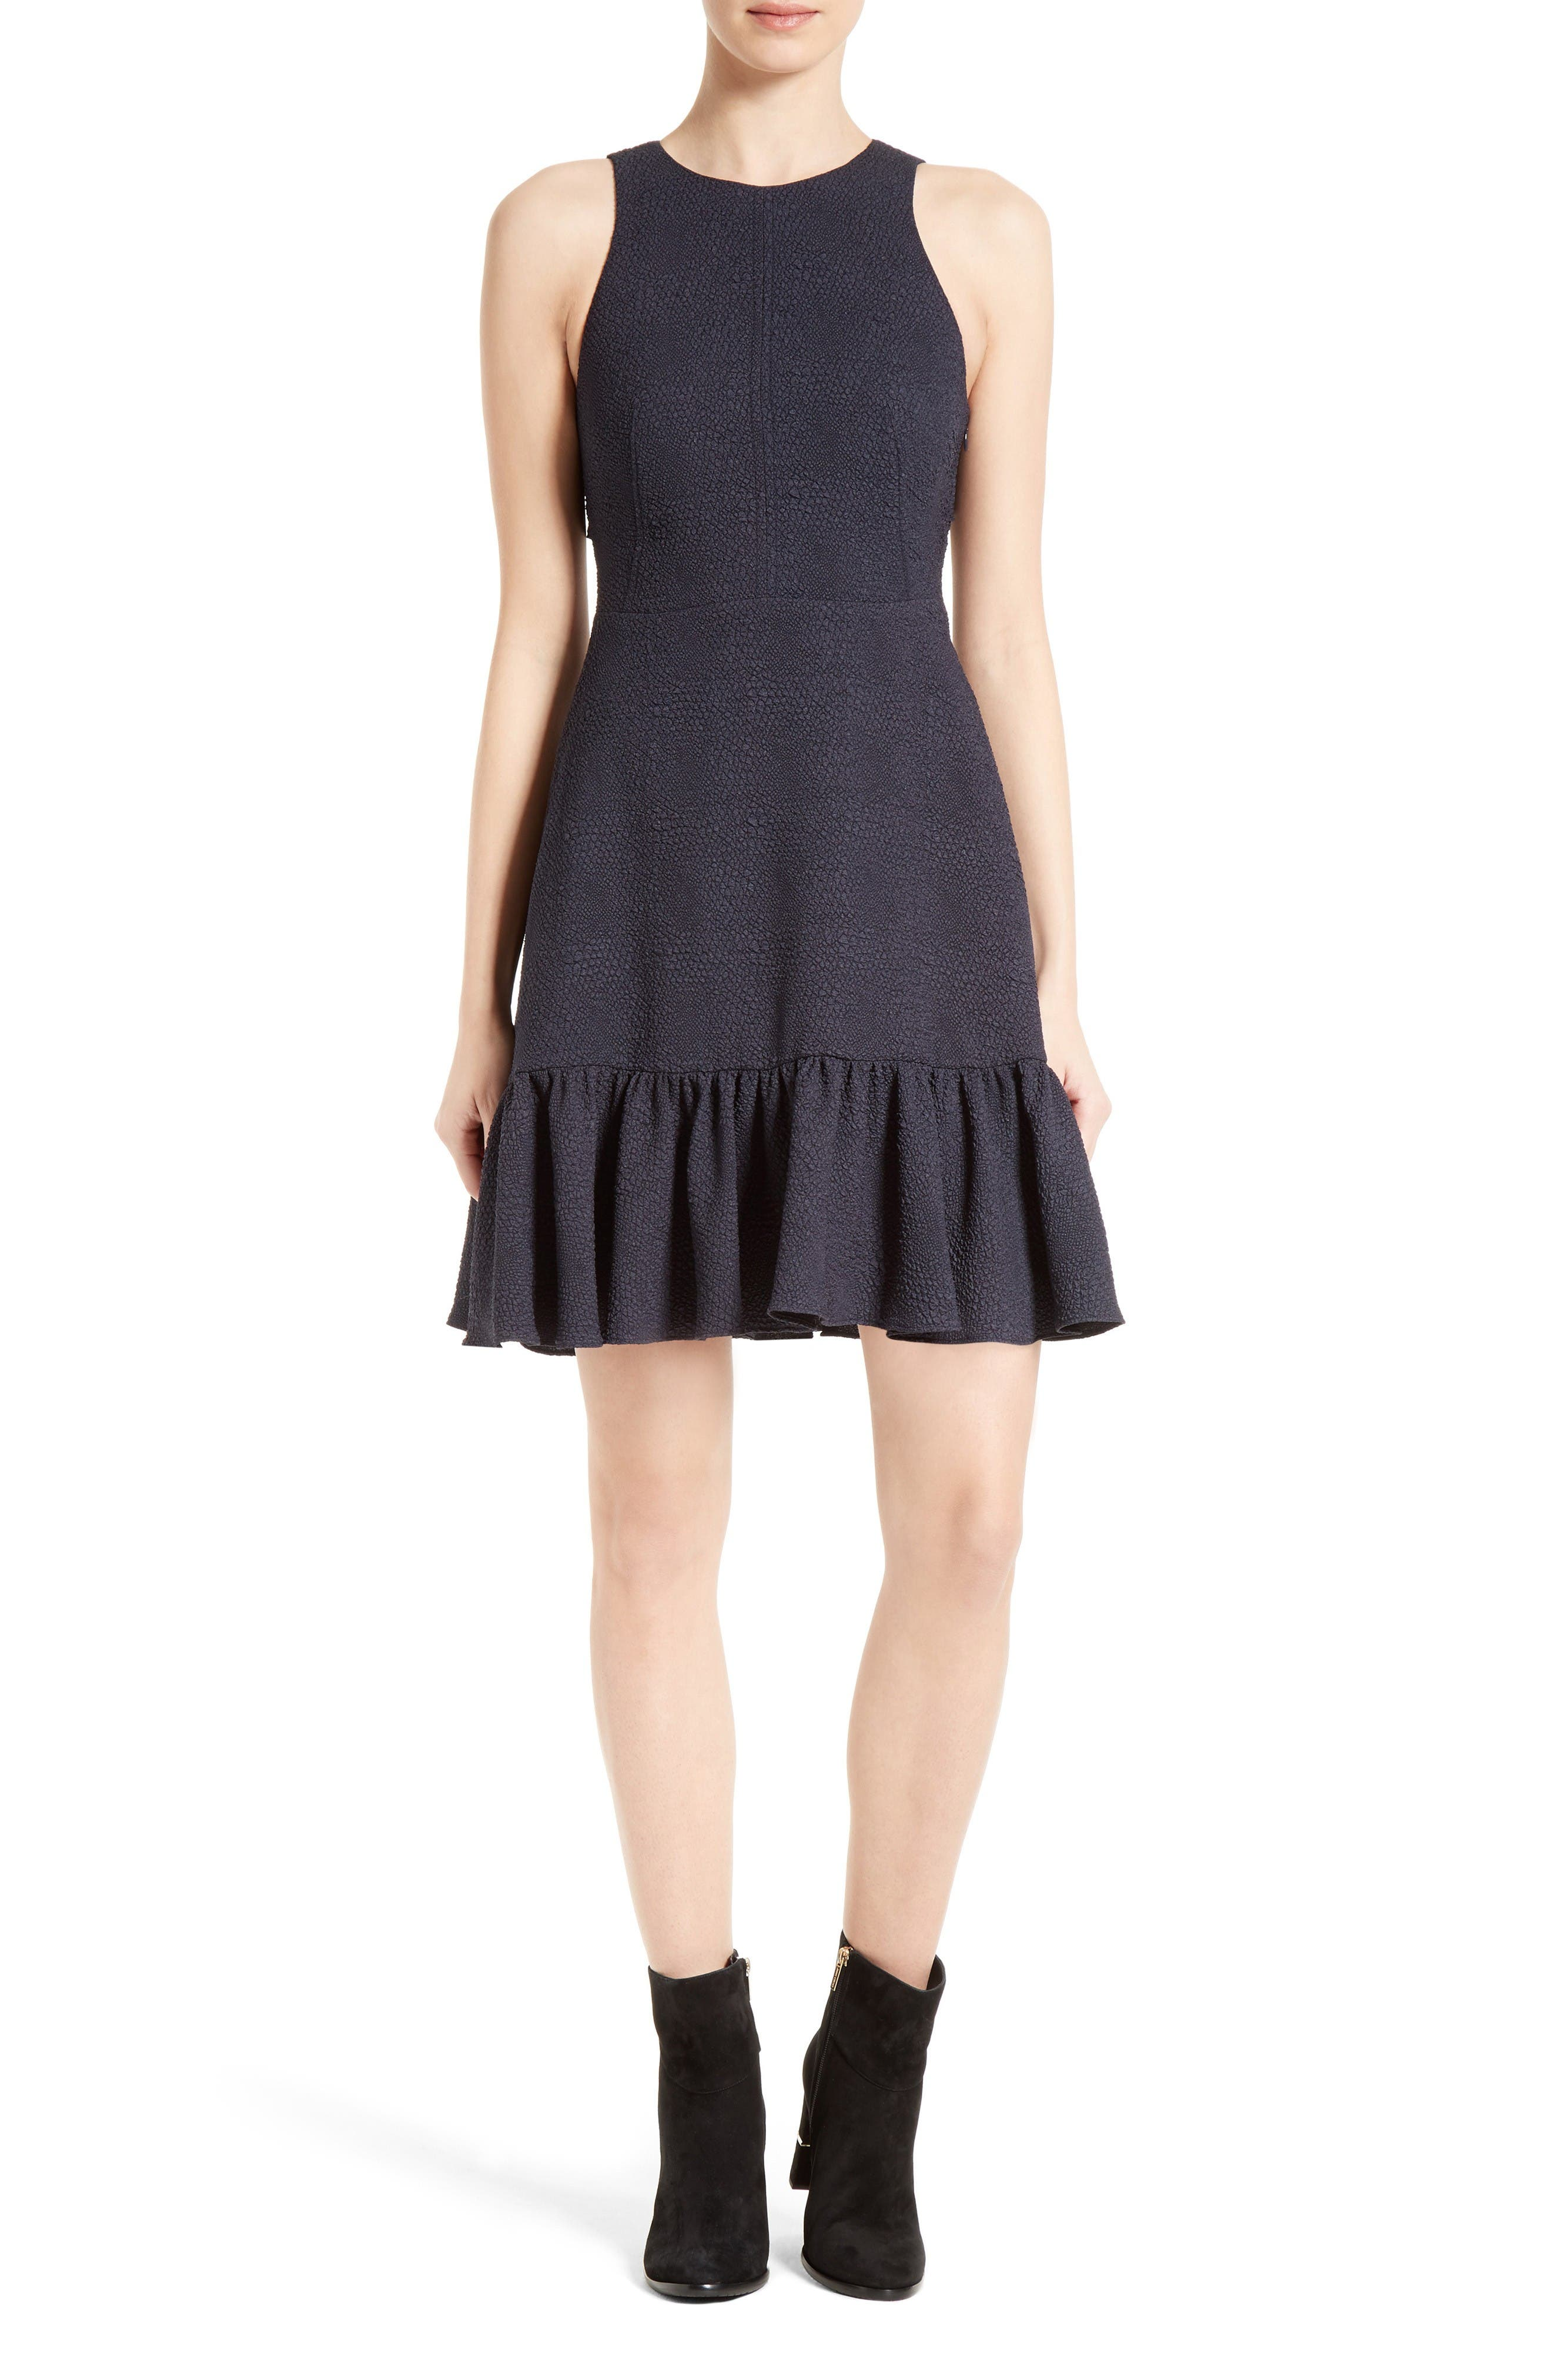 REBECCA TAYLOR Textured Stretch Woven Ruffle Dress